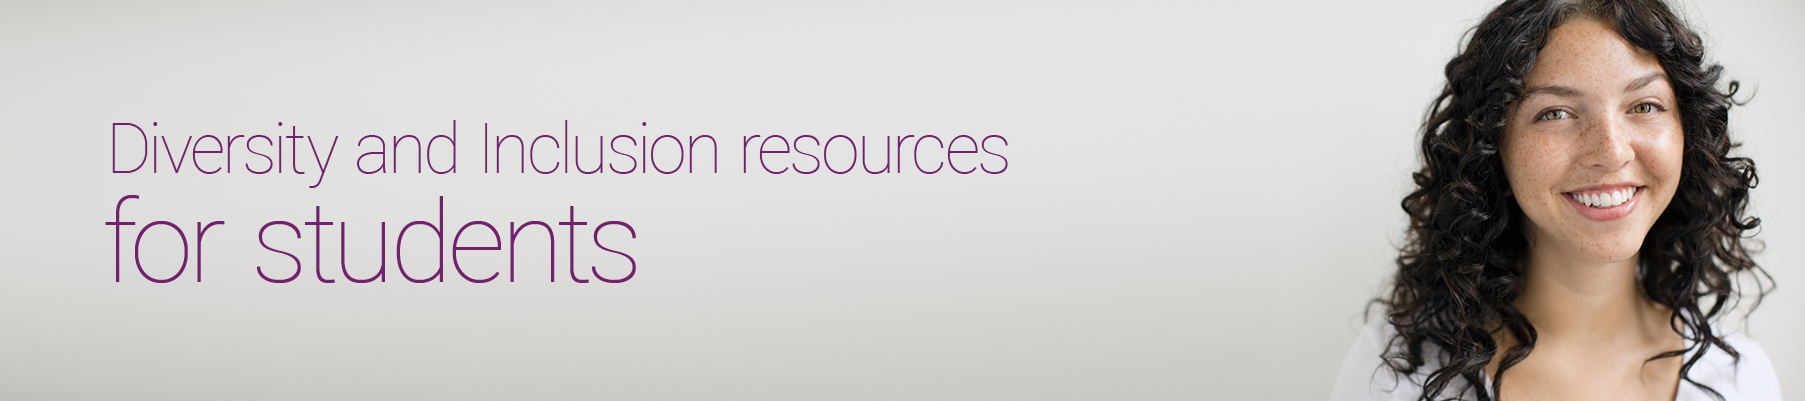 diversity and inclusion resources for students header image